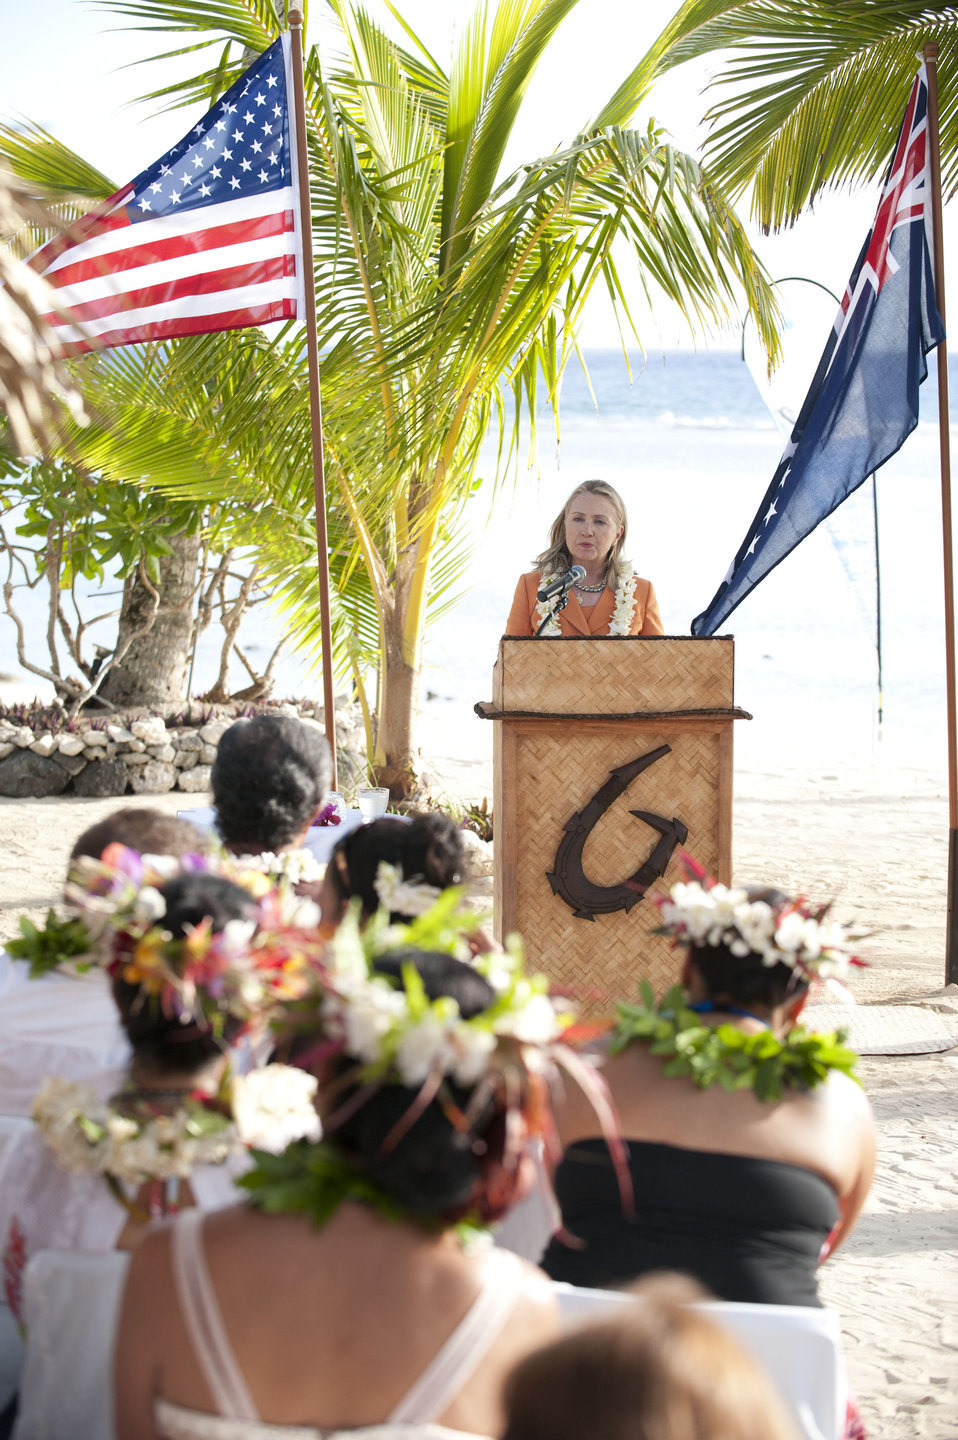 Sustainable Development and Conservation Event in the Cook Islands